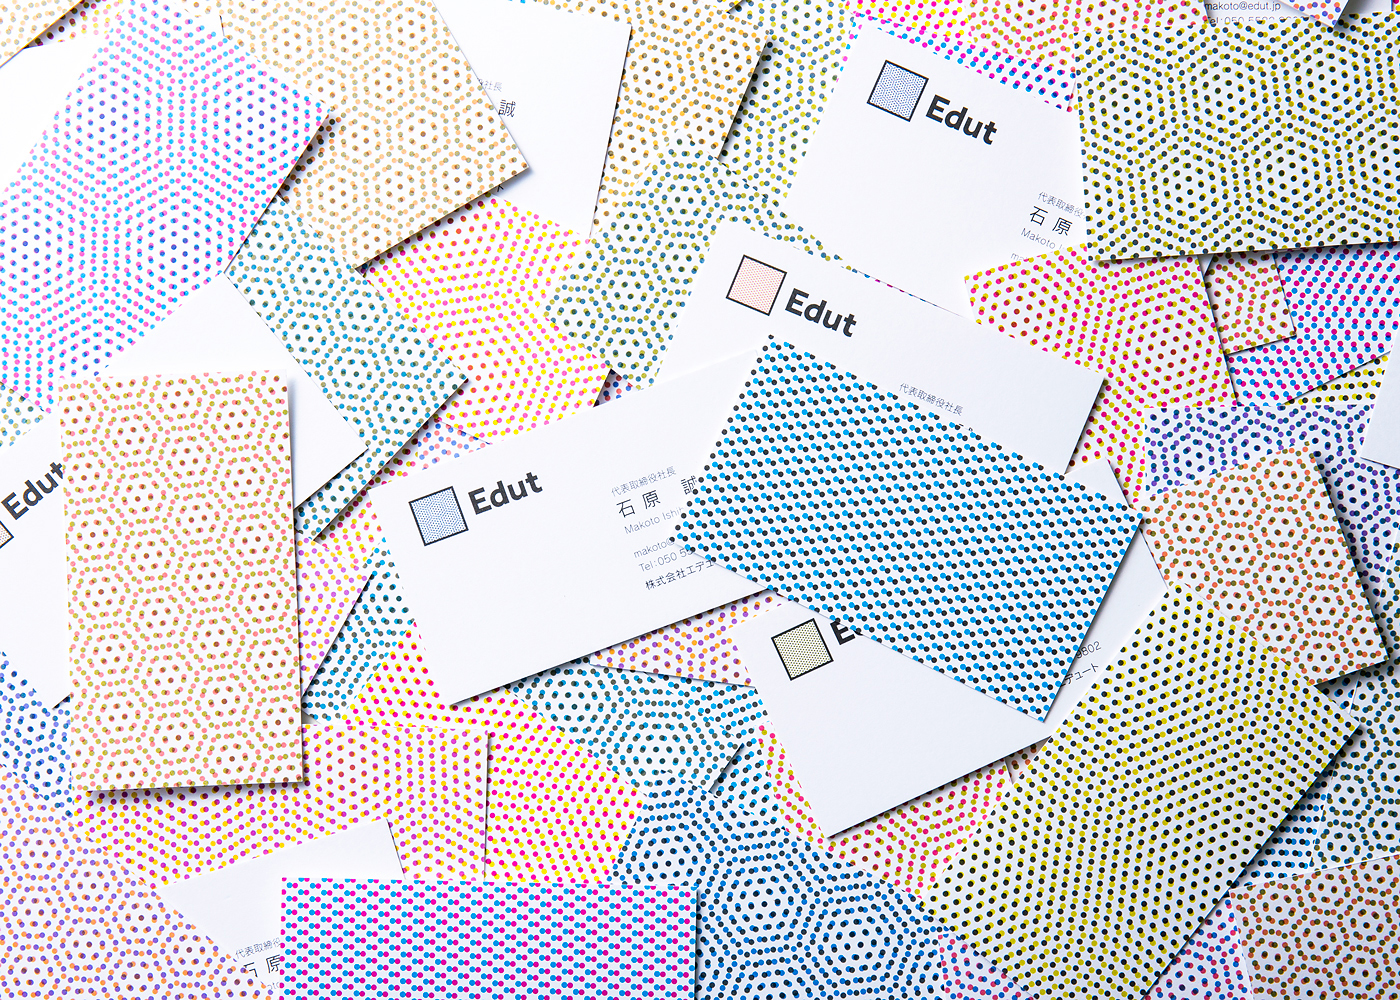 edut business cards